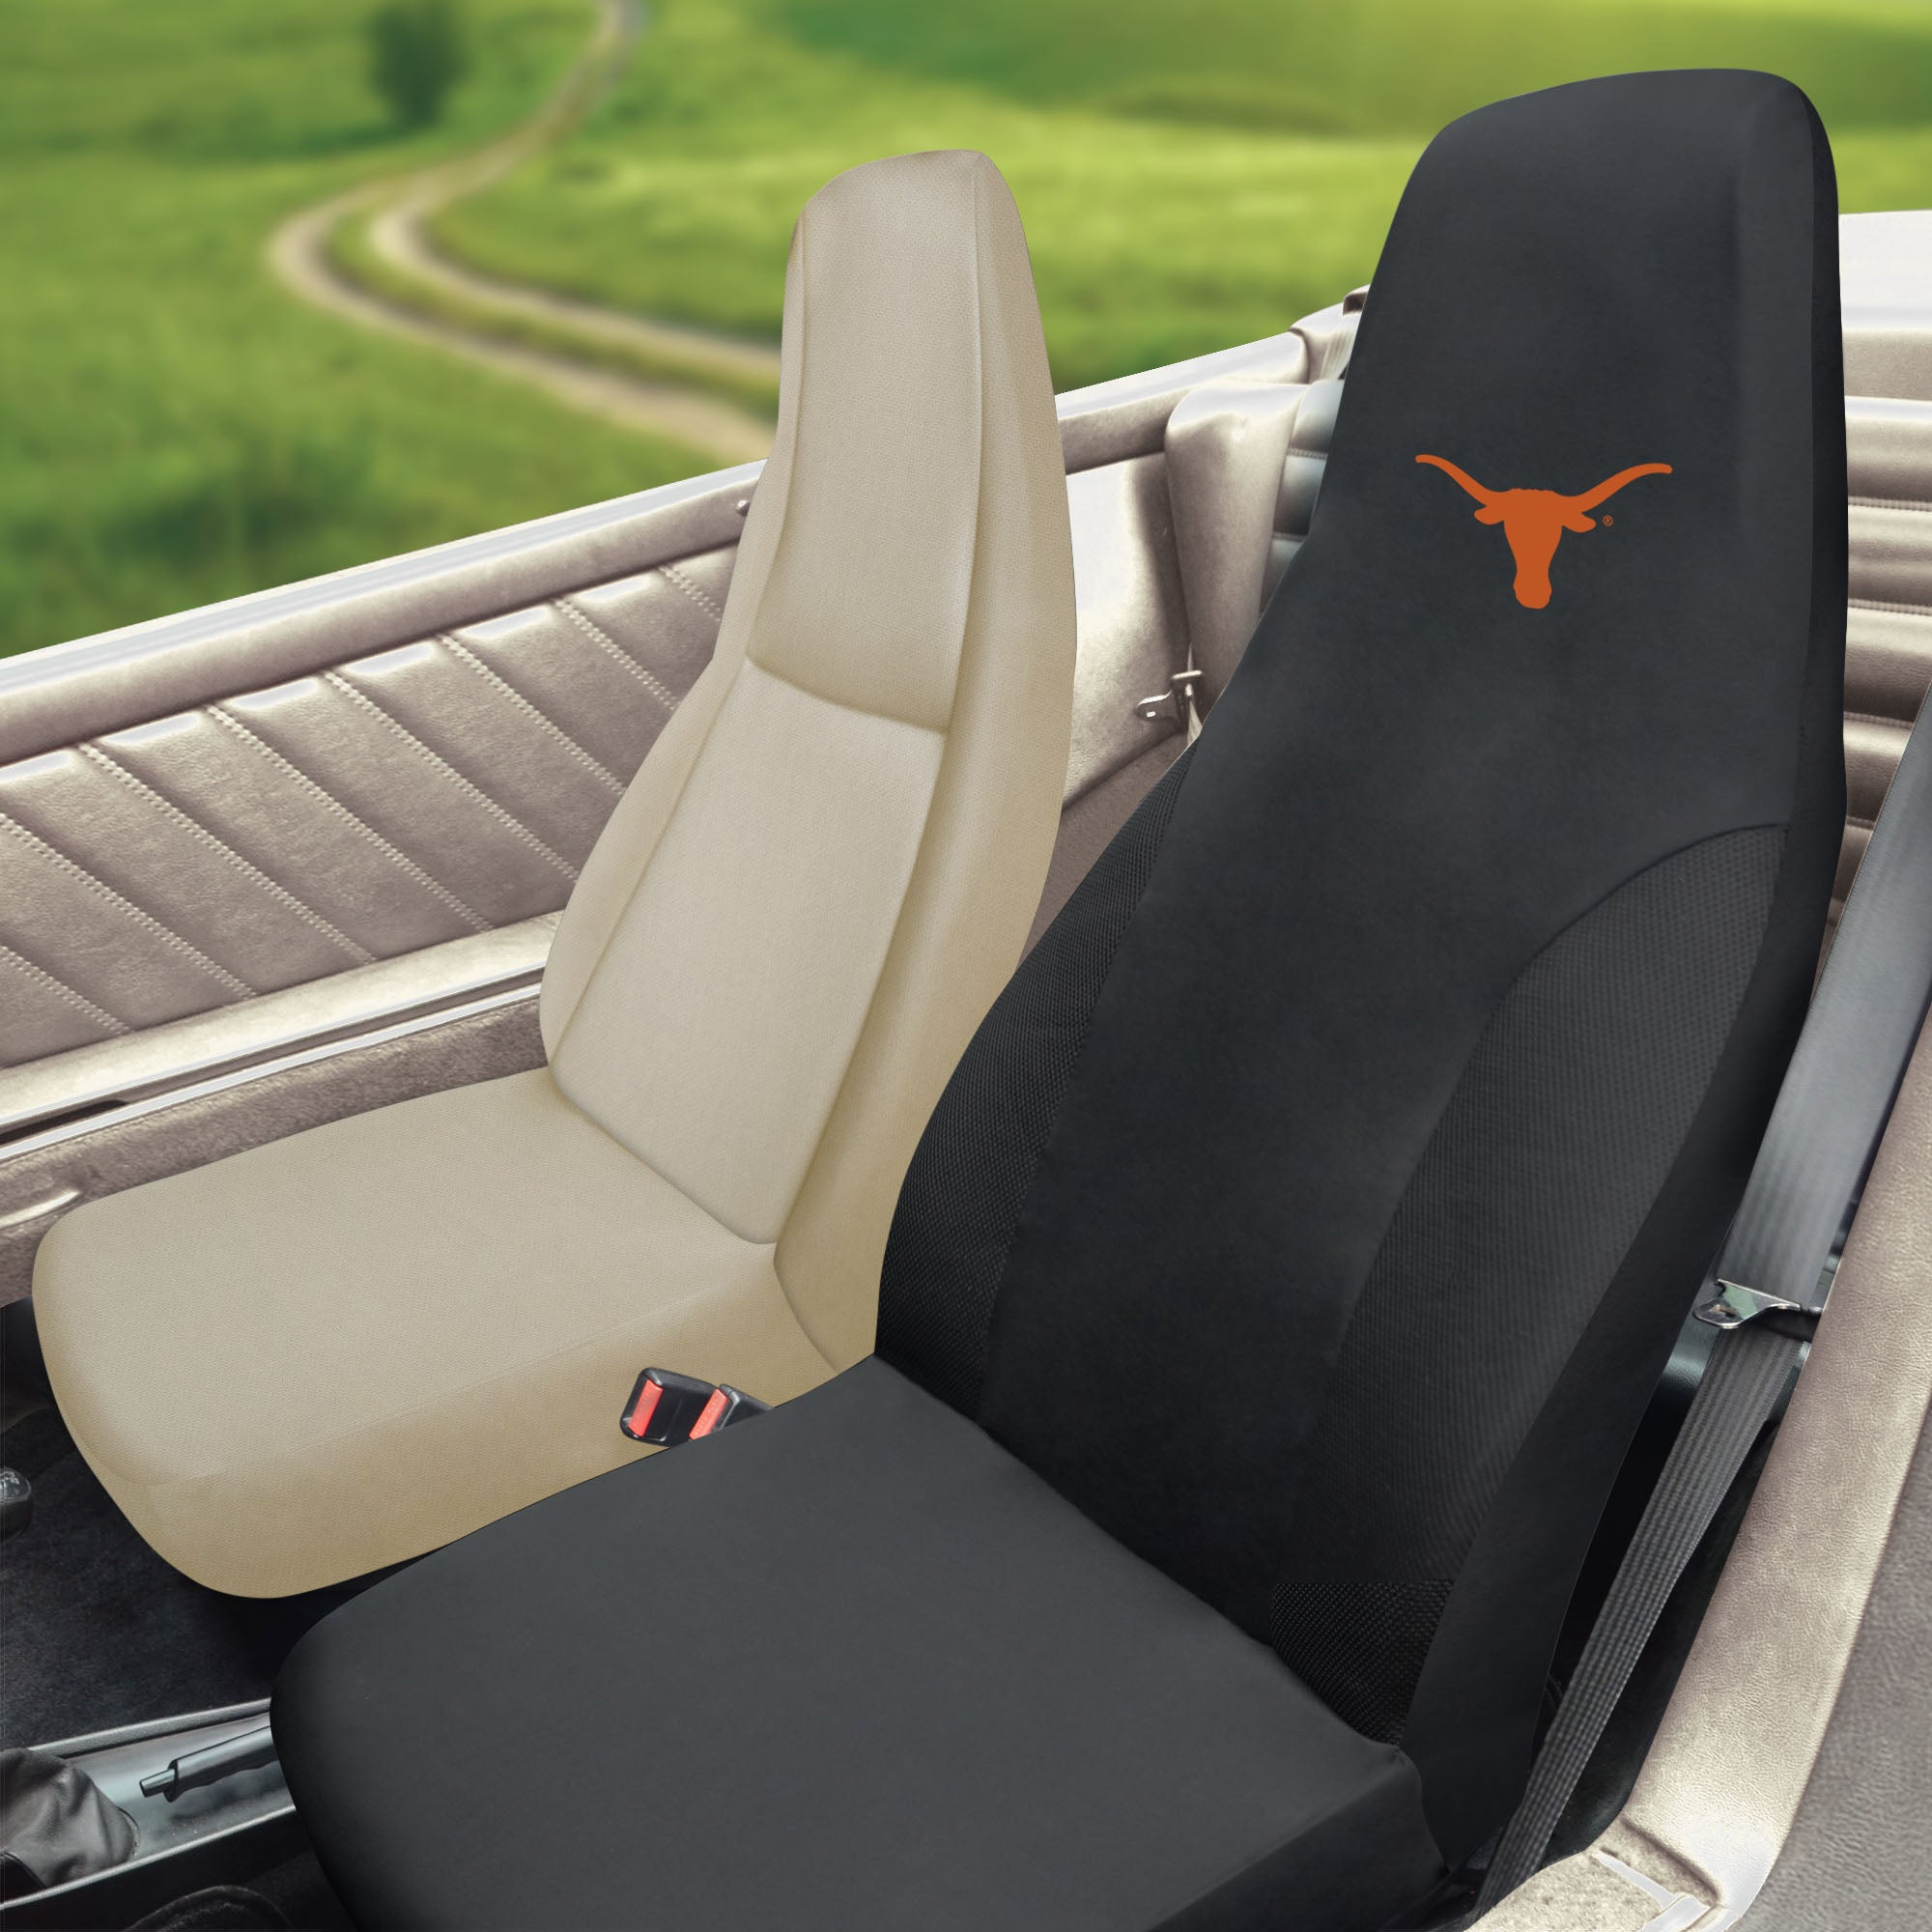 University of Texas Set of 2 Car Seat Covers